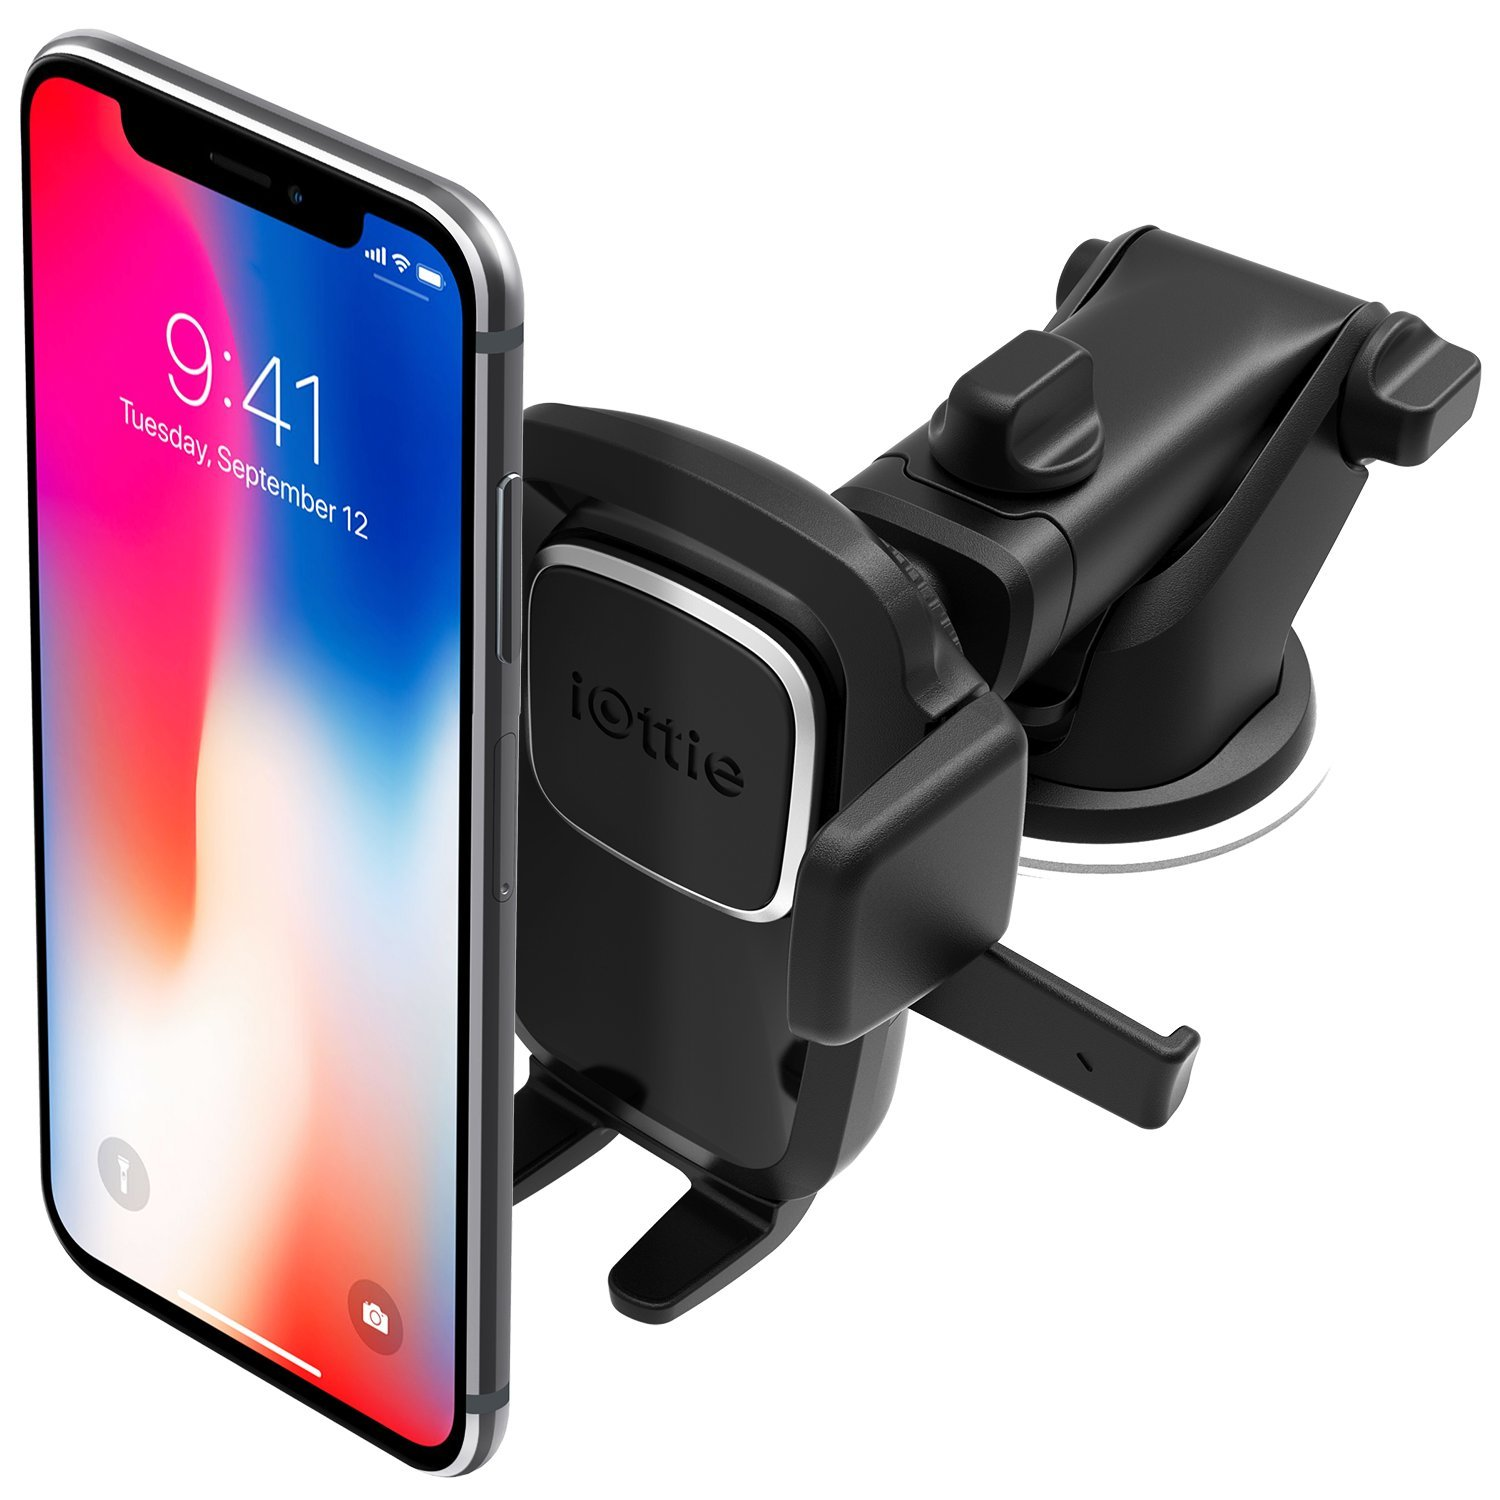 iOttie Easy One Touch 4 Dash & Windshield Car Mount Phone Holder || for iPhone, Samsung, Moto, Huawei, Nokia, LG, Smartphones by iOttie